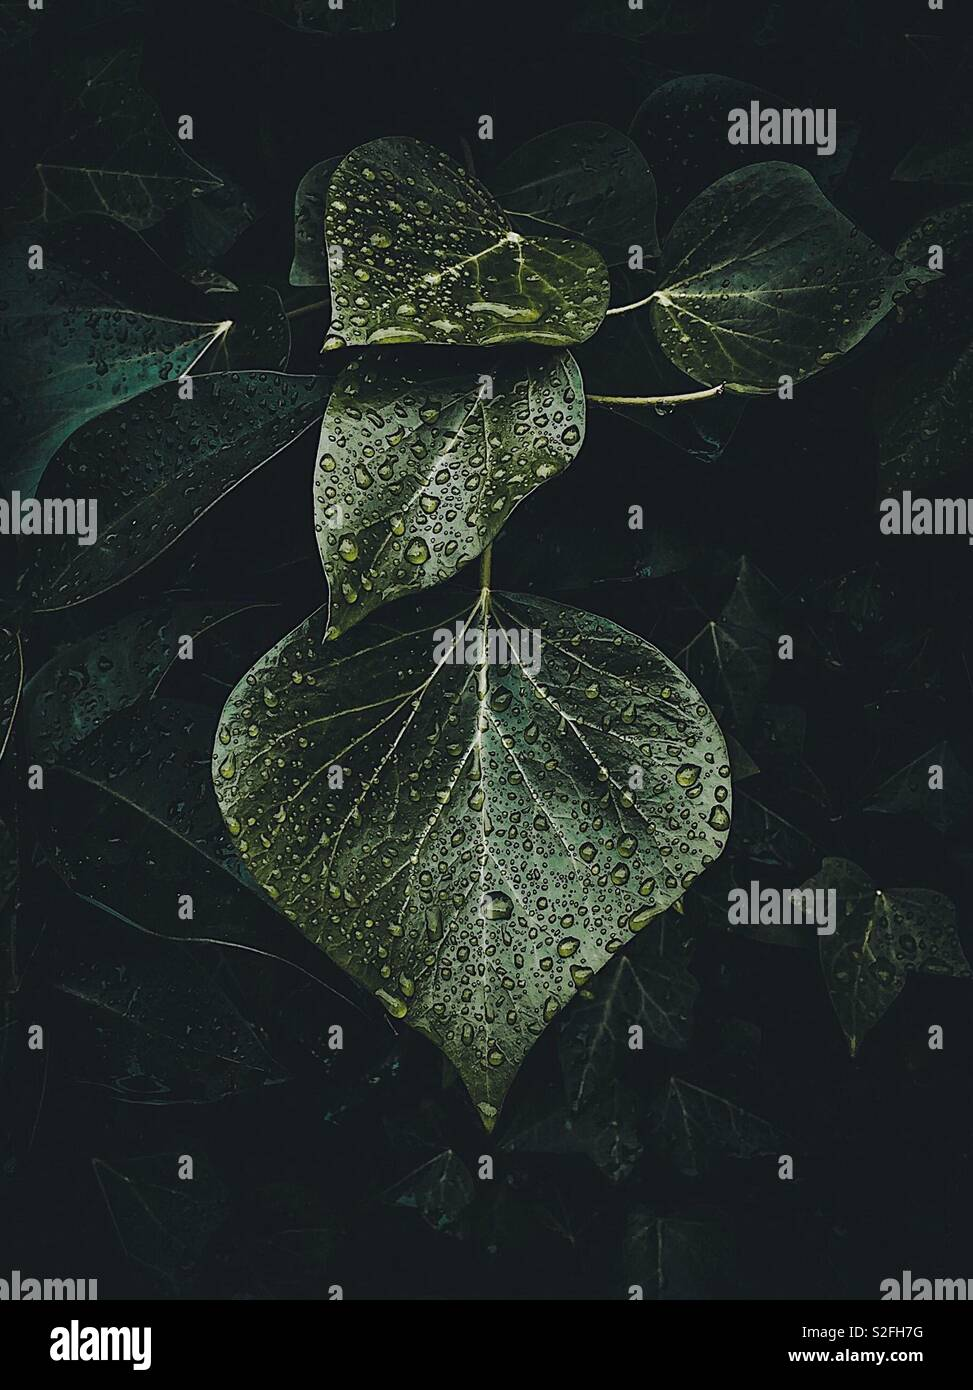 the raindrops on the green plant leaves - Stock Image